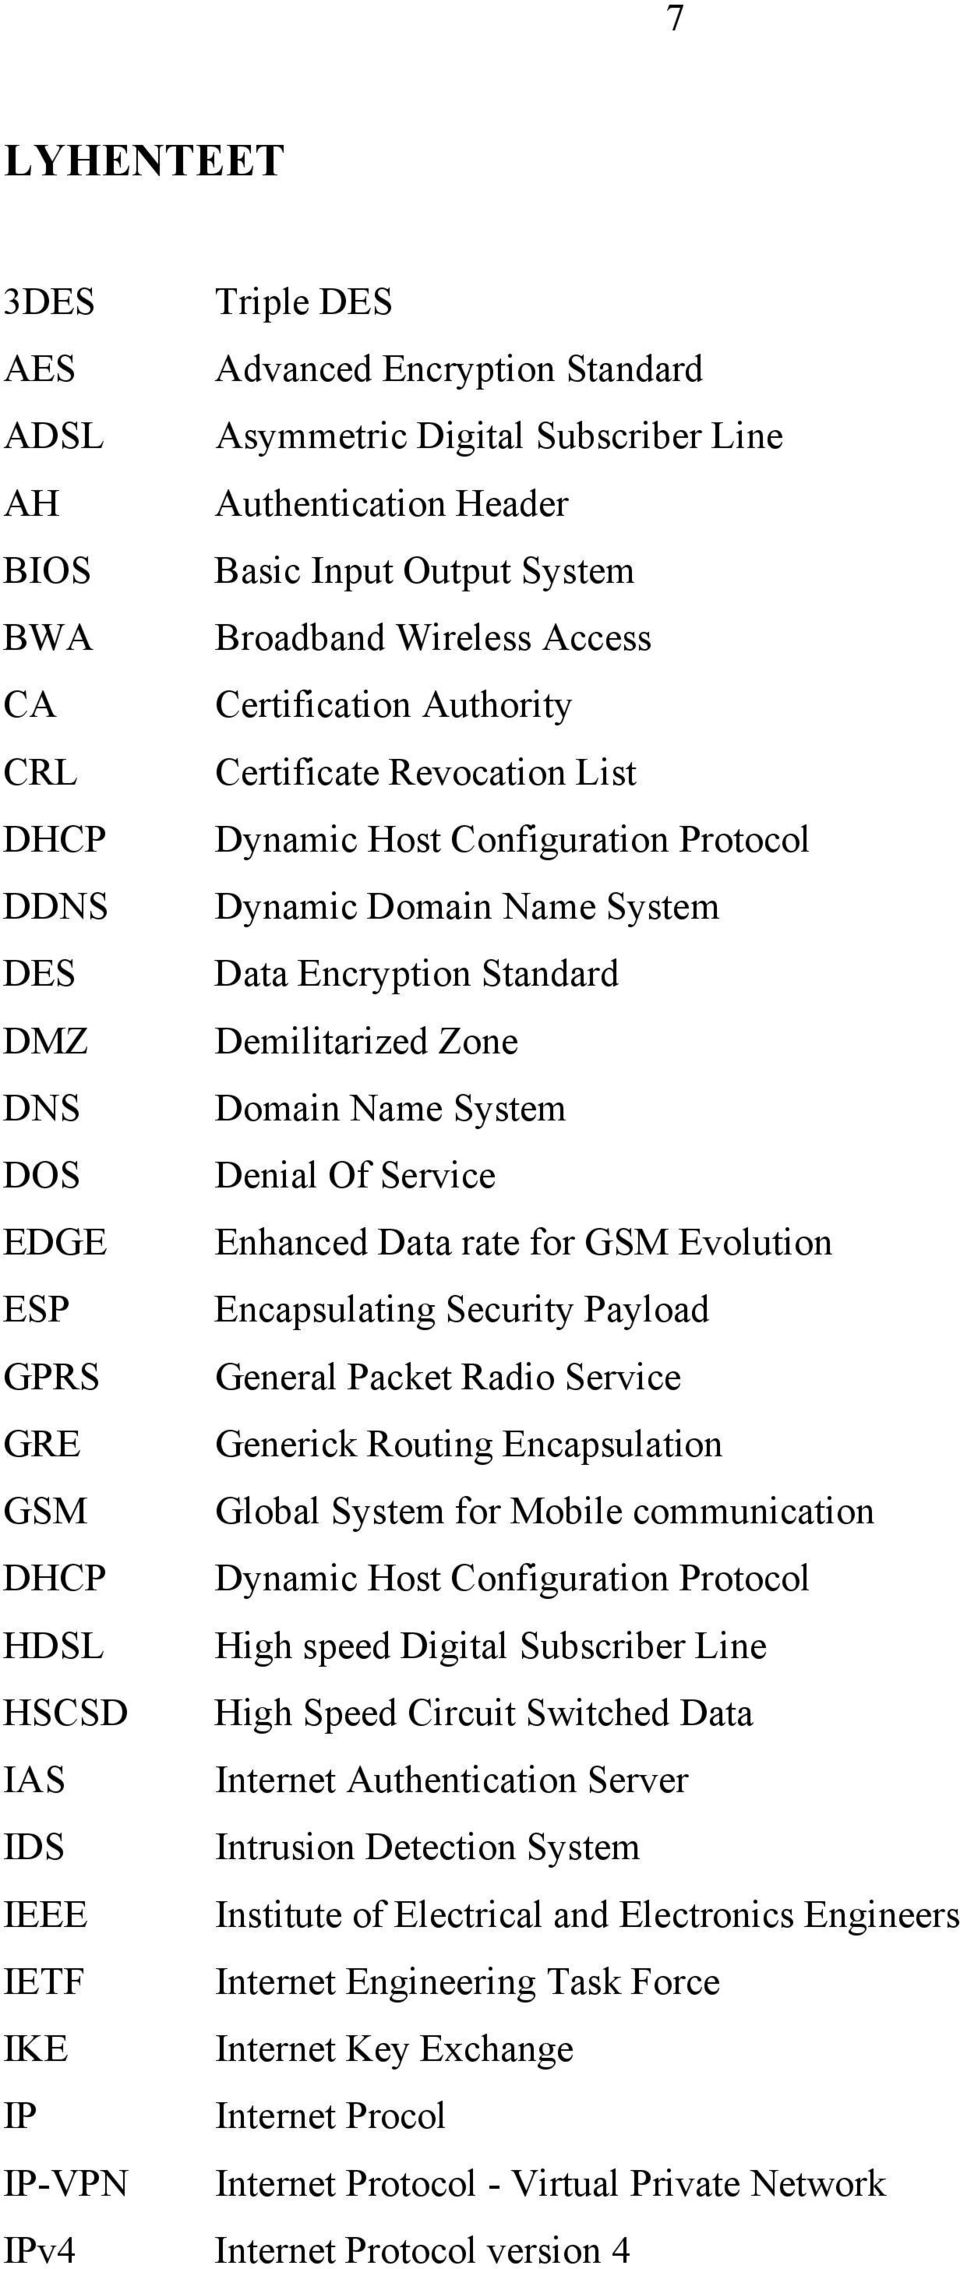 System DOS Denial Of Service EDGE Enhanced Data rate for GSM Evolution ESP Encapsulating Security Payload GPRS General Packet Radio Service GRE Generick Routing Encapsulation GSM Global System for